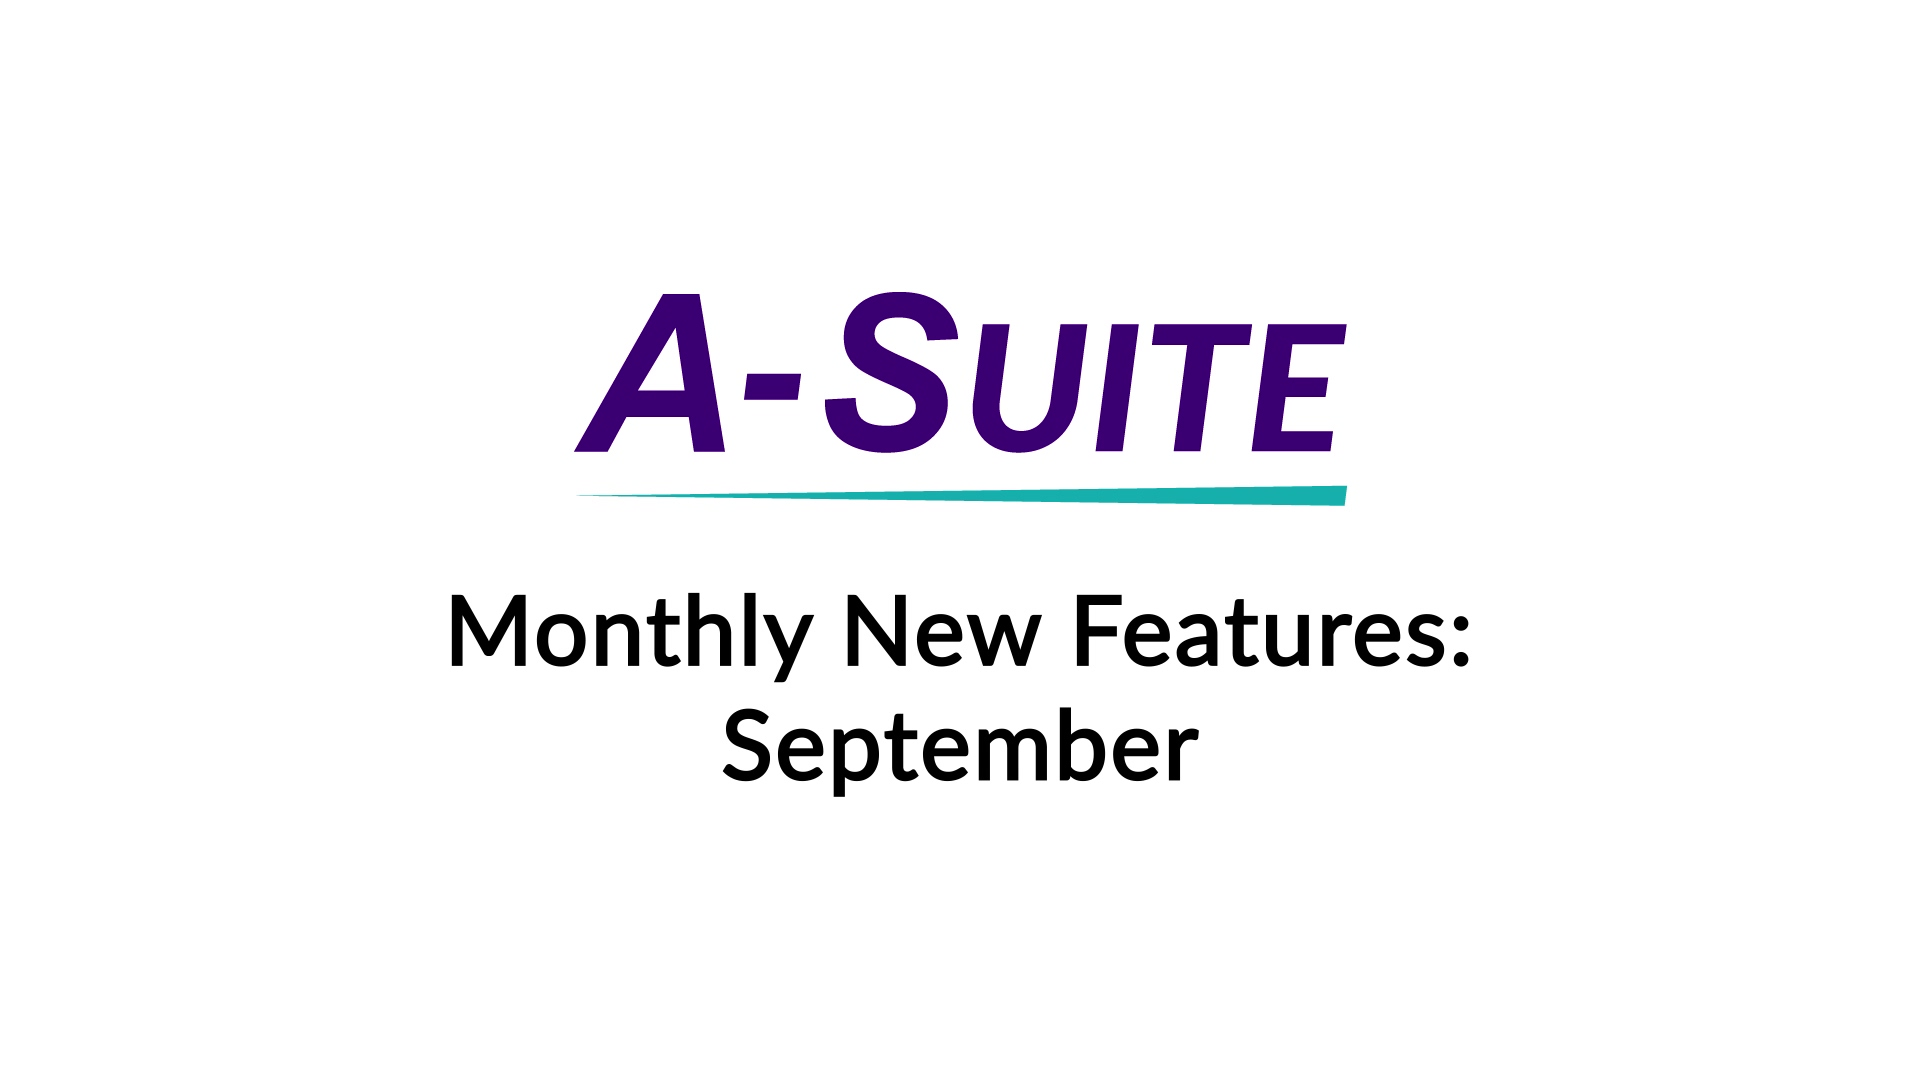 A-Suite Monthly Features - September